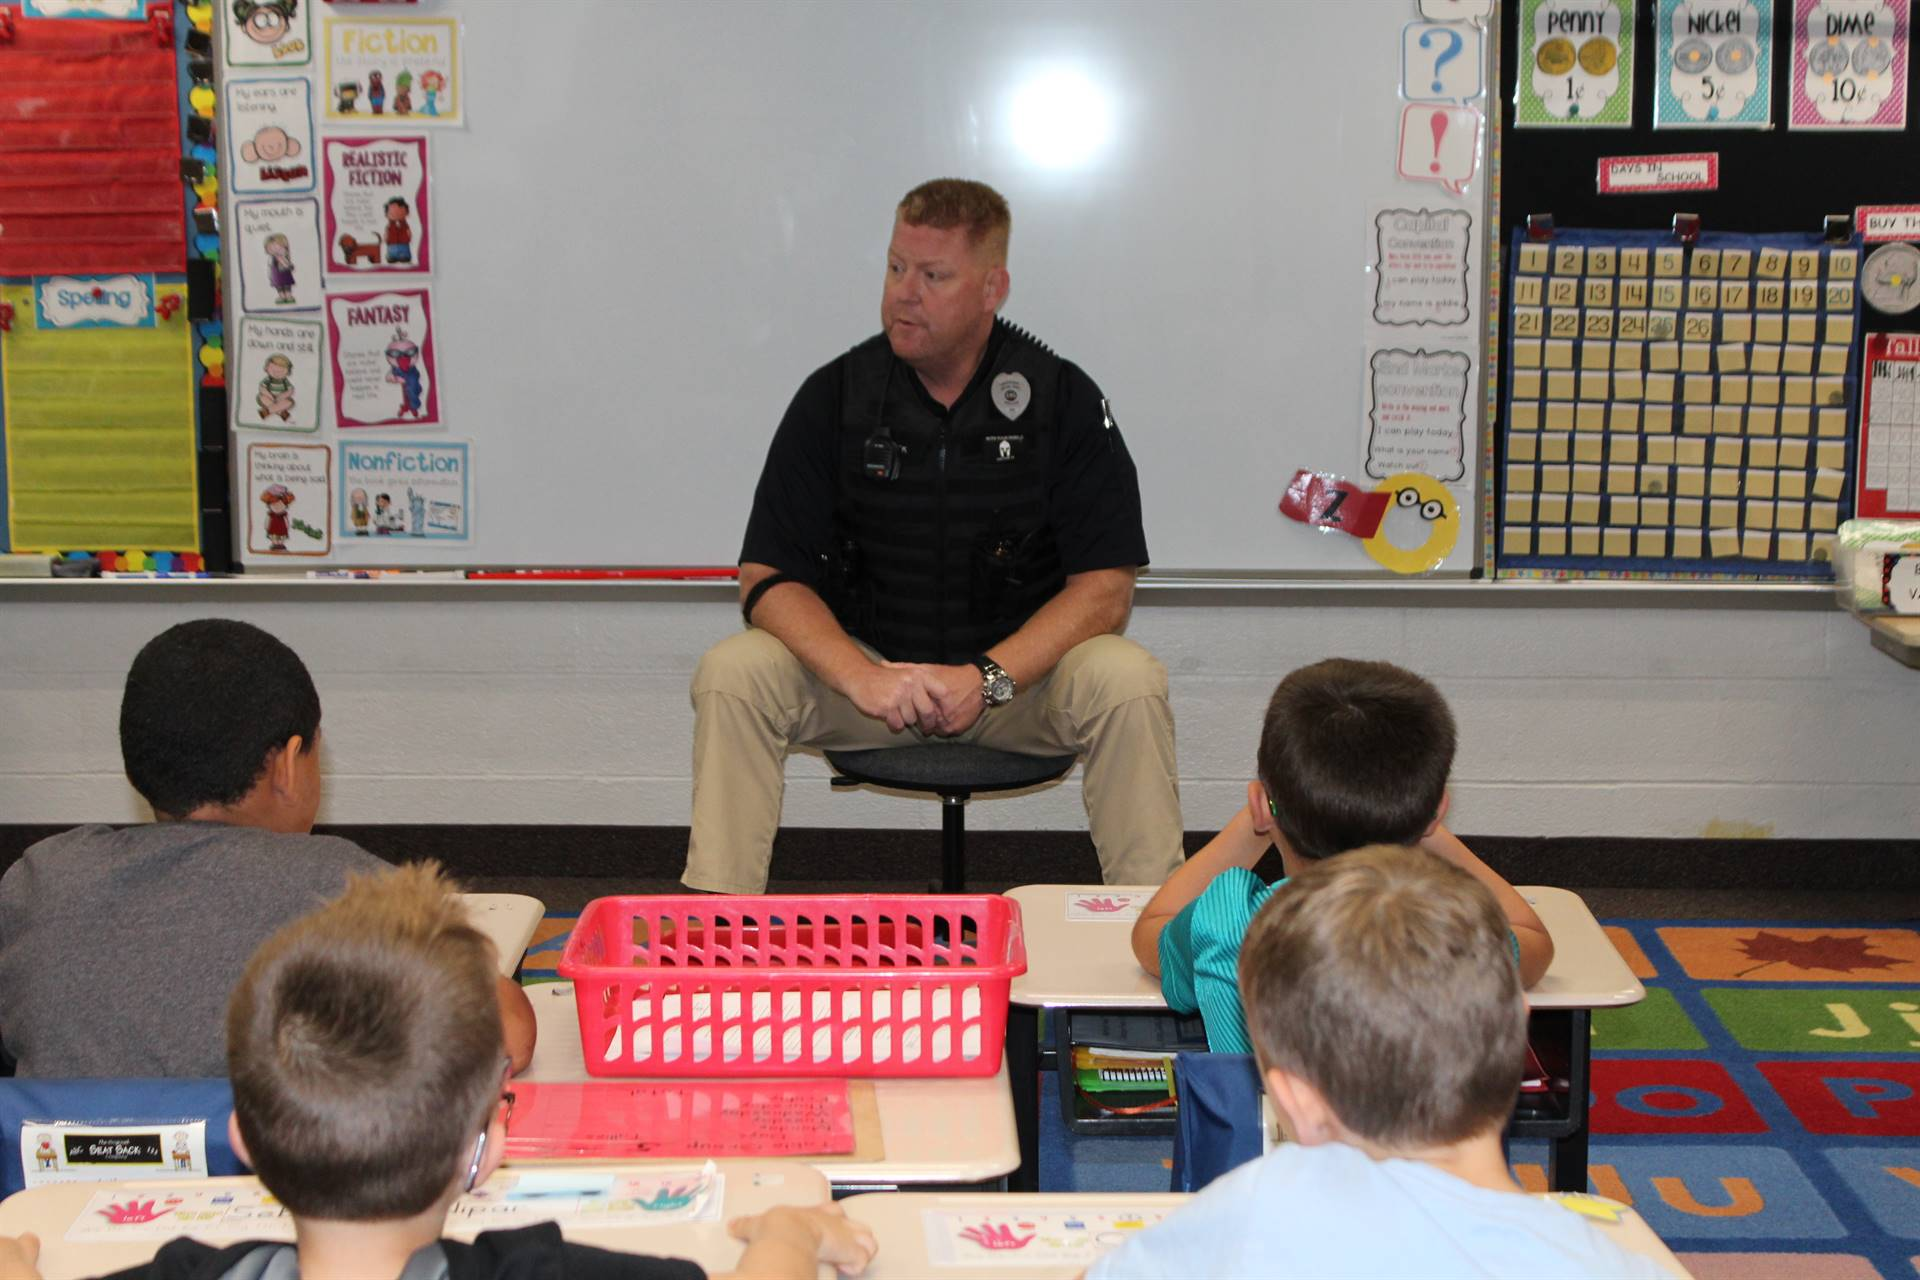 Officer Ken talking to the first graders